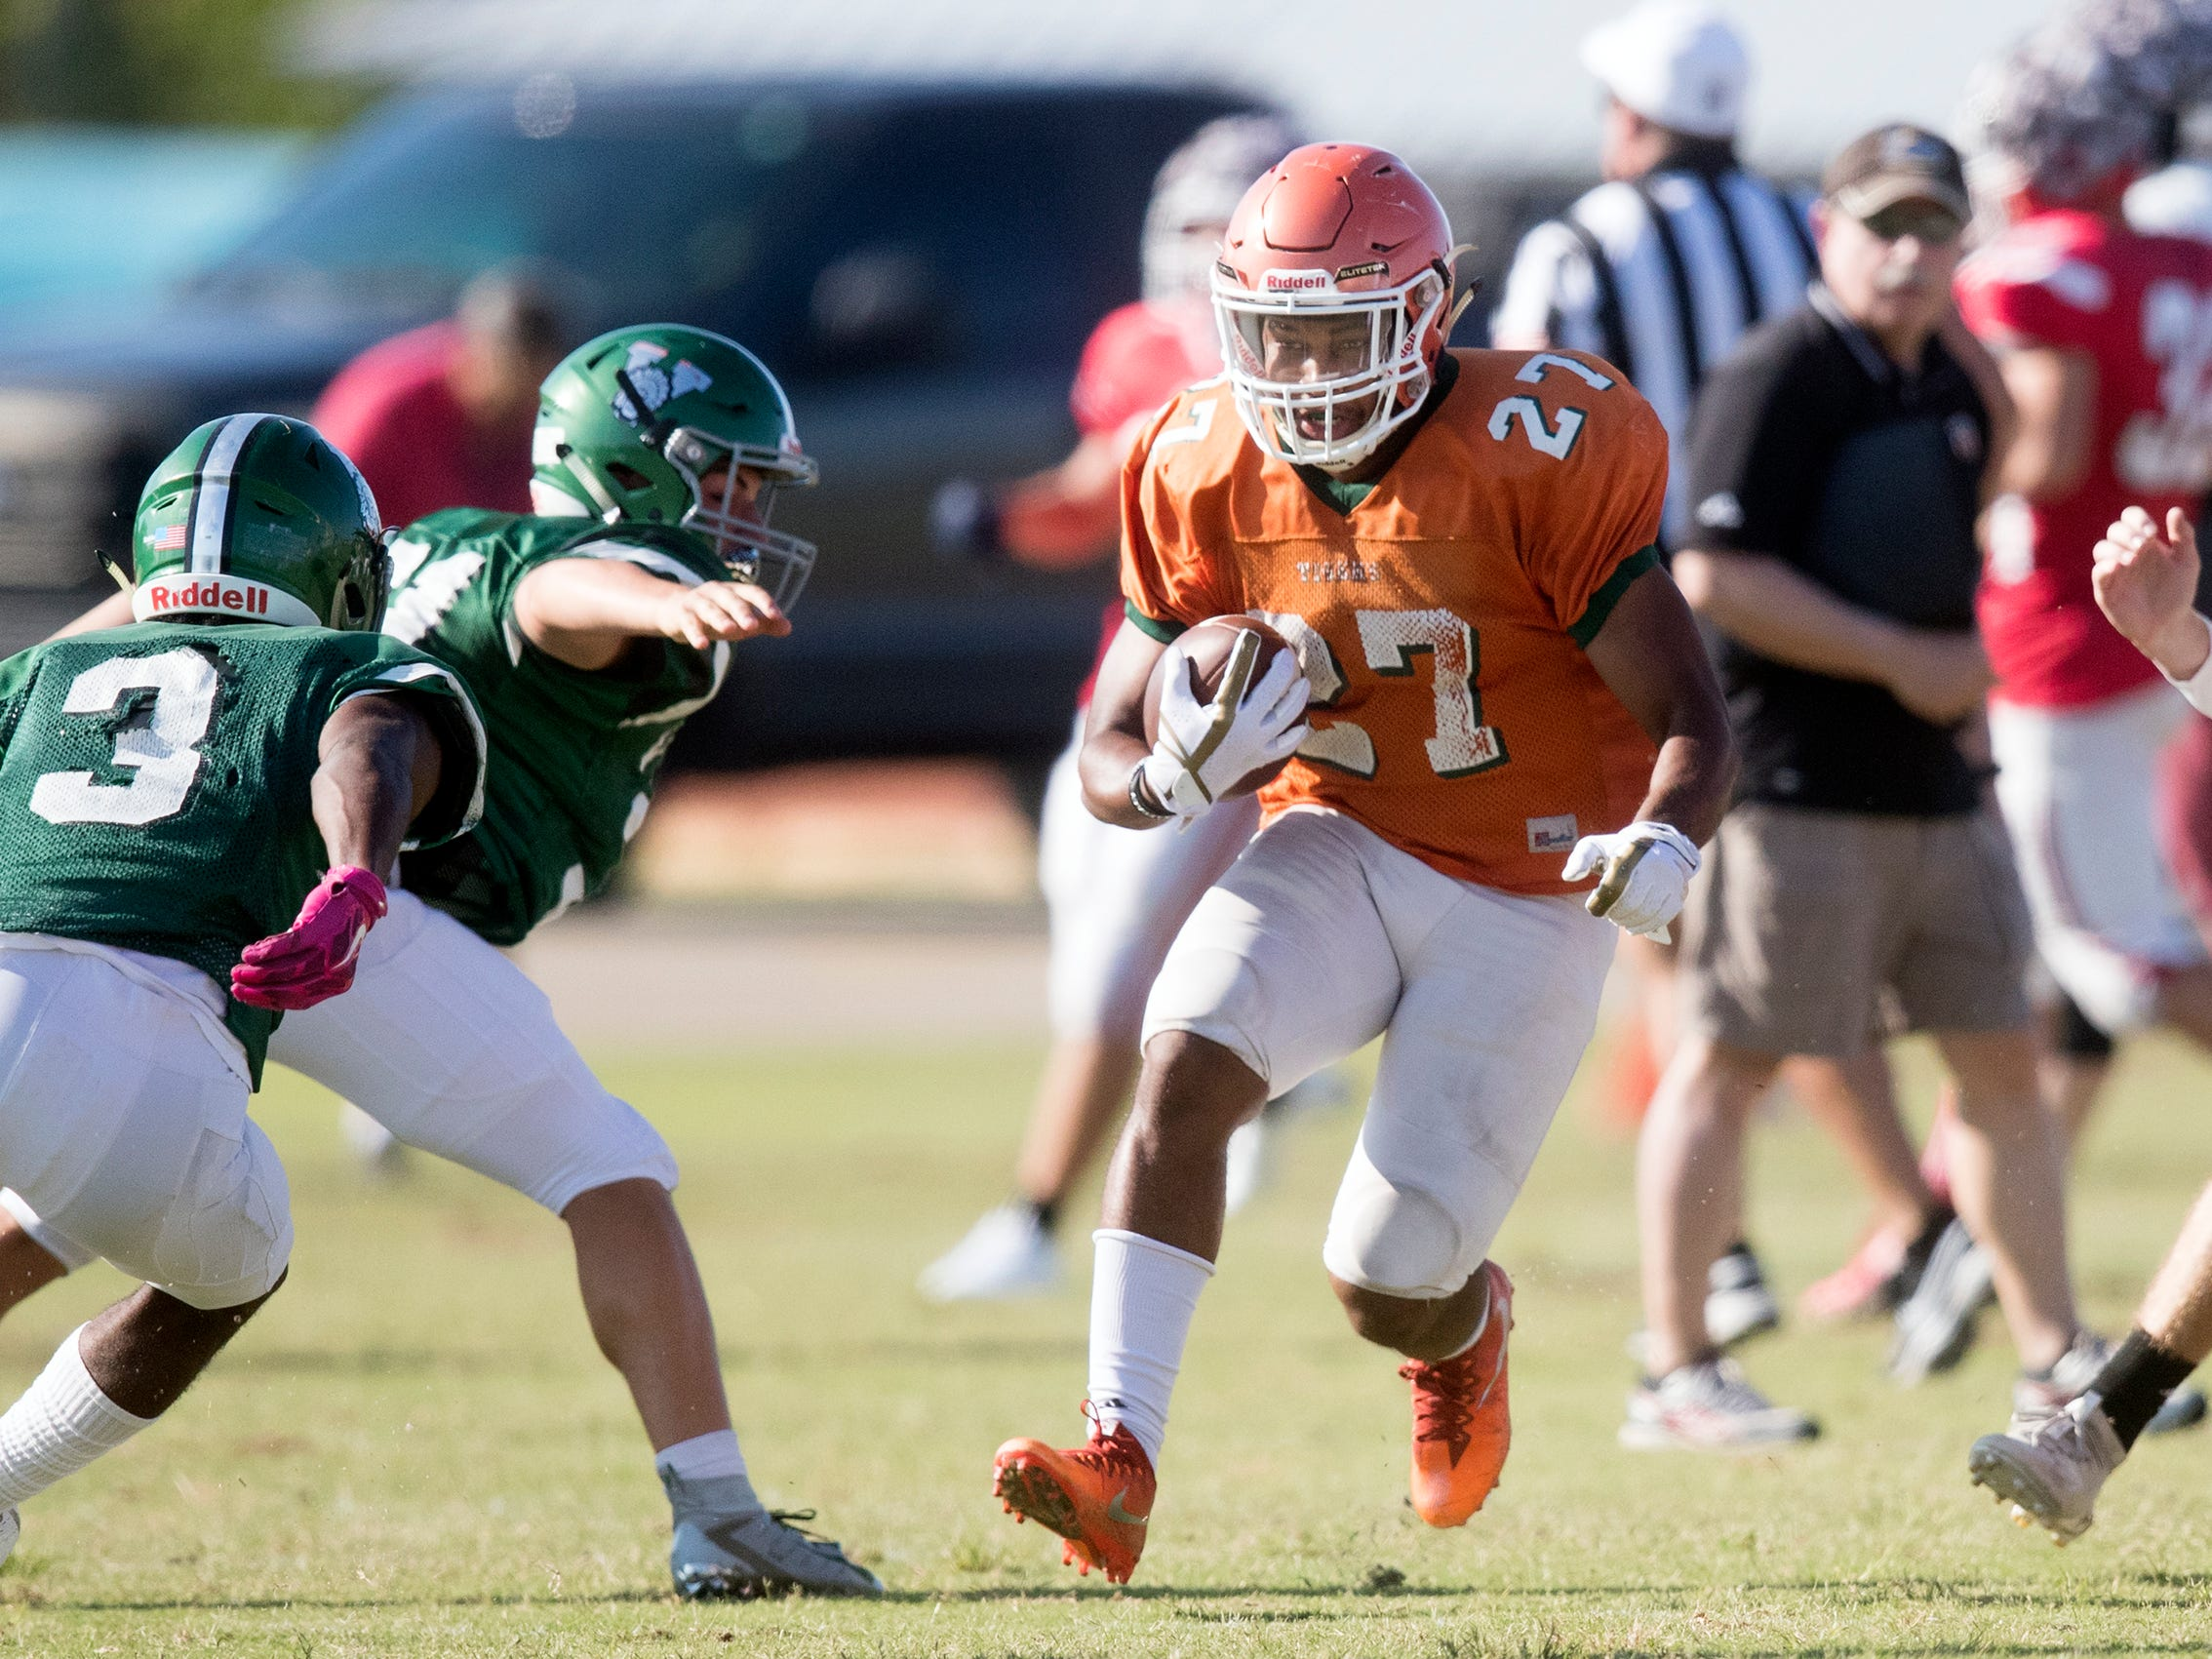 Dunbar High School joined Riverdale, North Fort Myers and Venice in a joint scrimmage on Saturday at North Fort Myers High School.